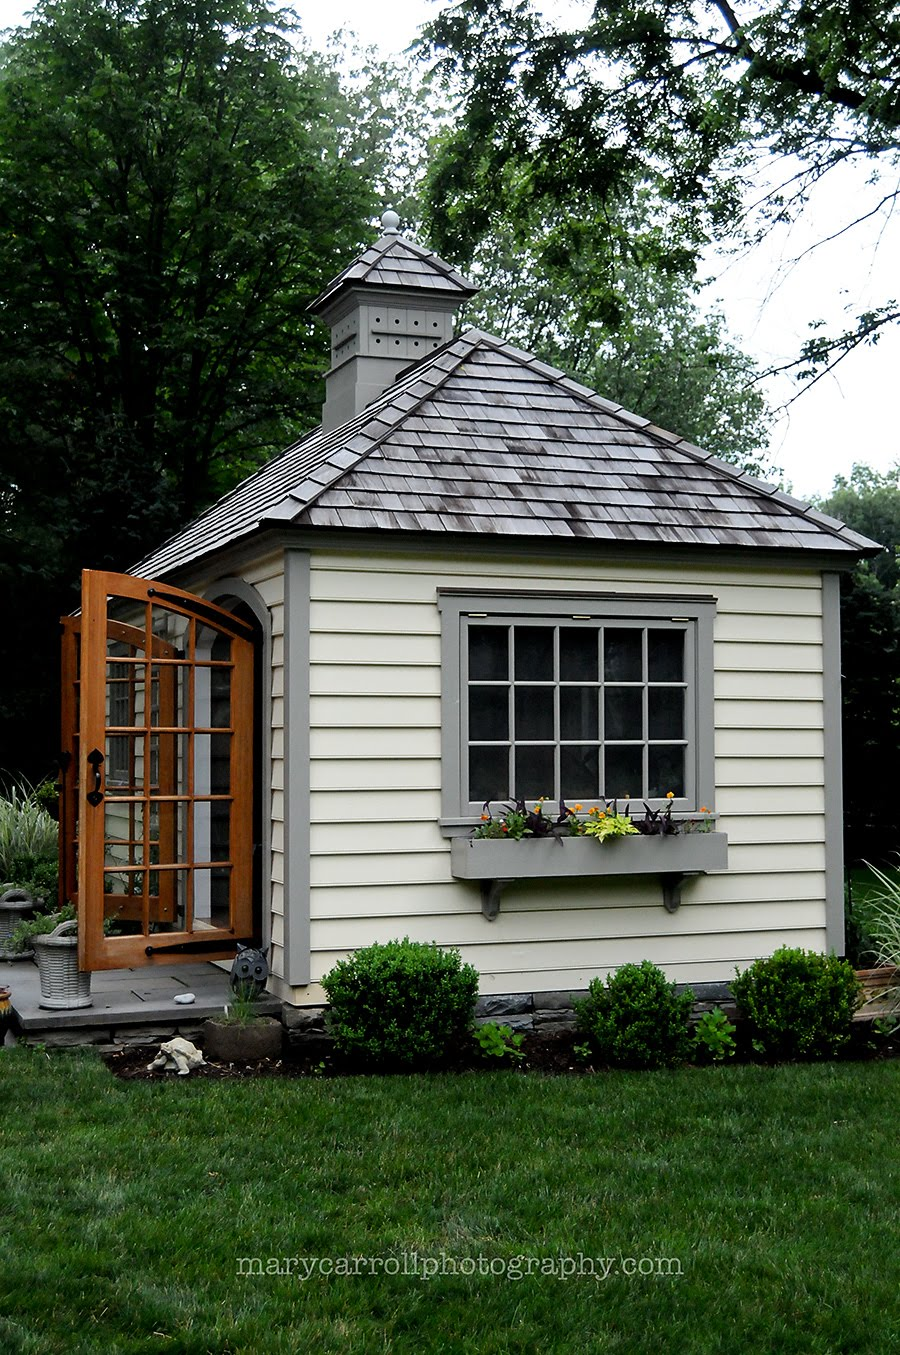 Little red house garden shed for Small backyard cabin